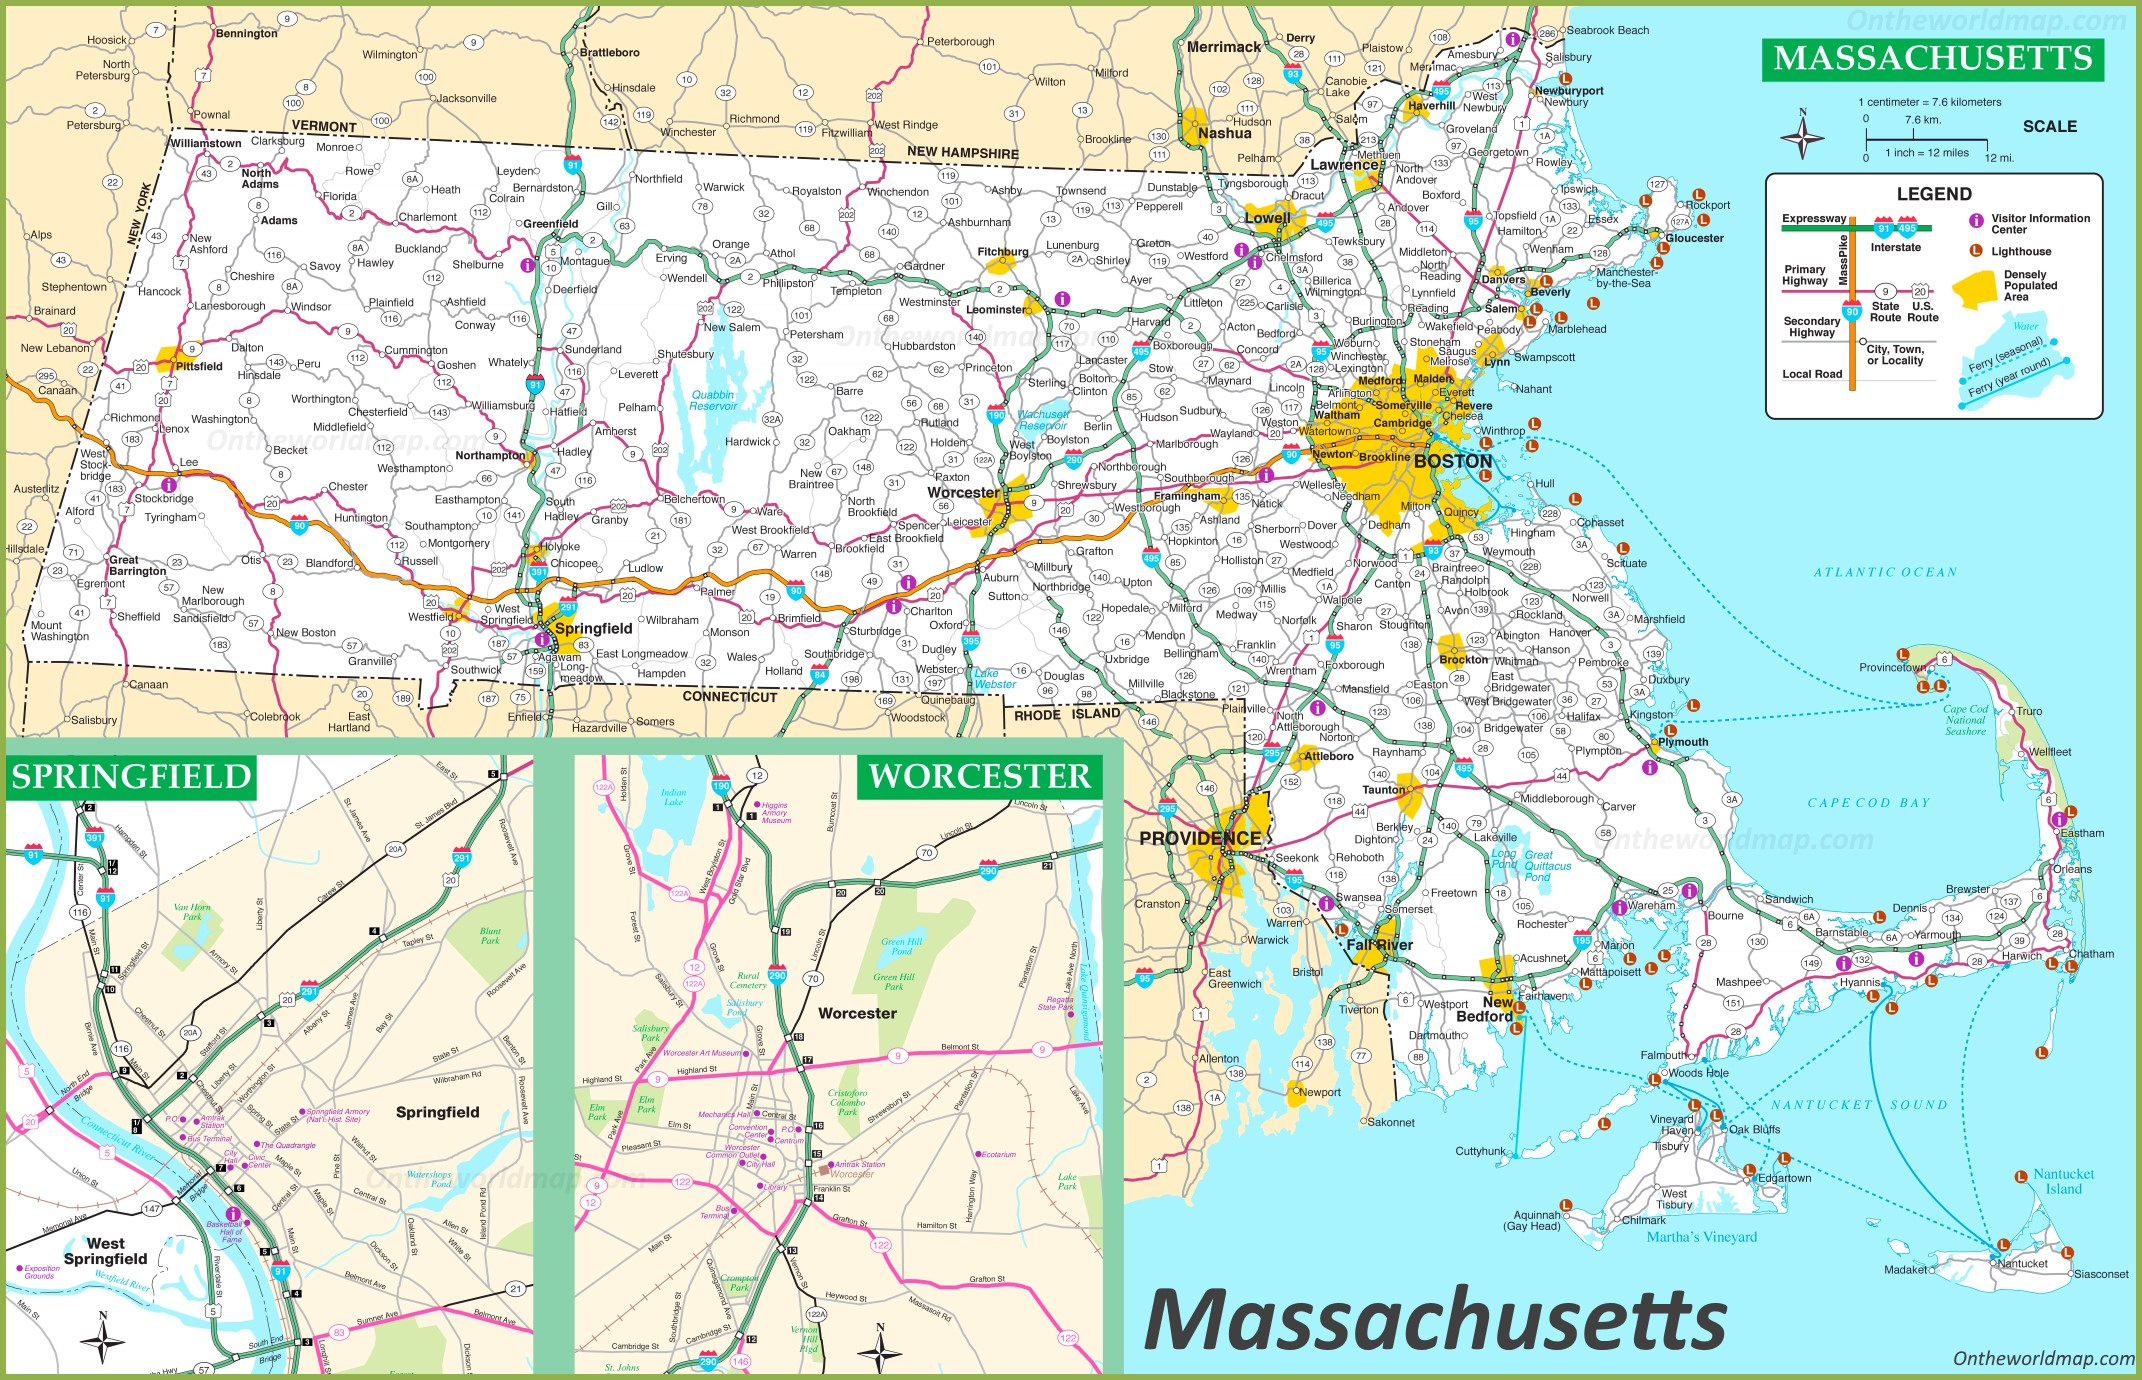 Massachusetts Road Map - Massachusetts map